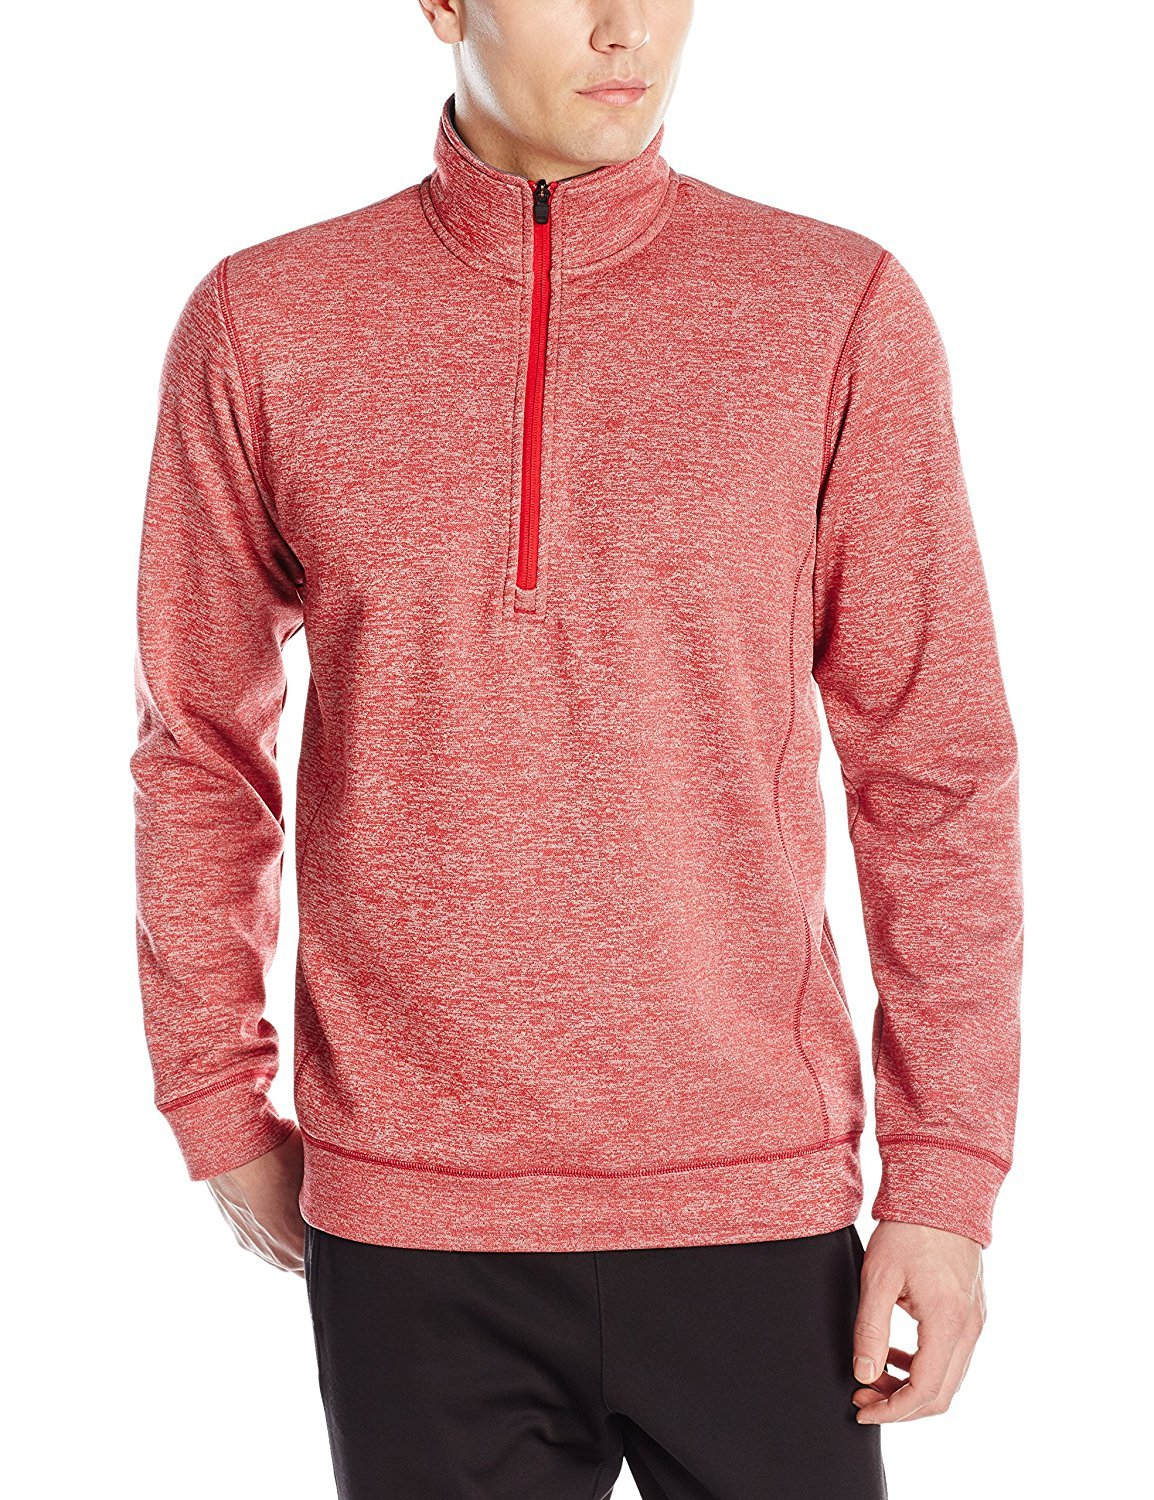 adidas Mens Climawarm Team Issue 1/4 Zip Long Sleeve, Power Red Heathered, Large